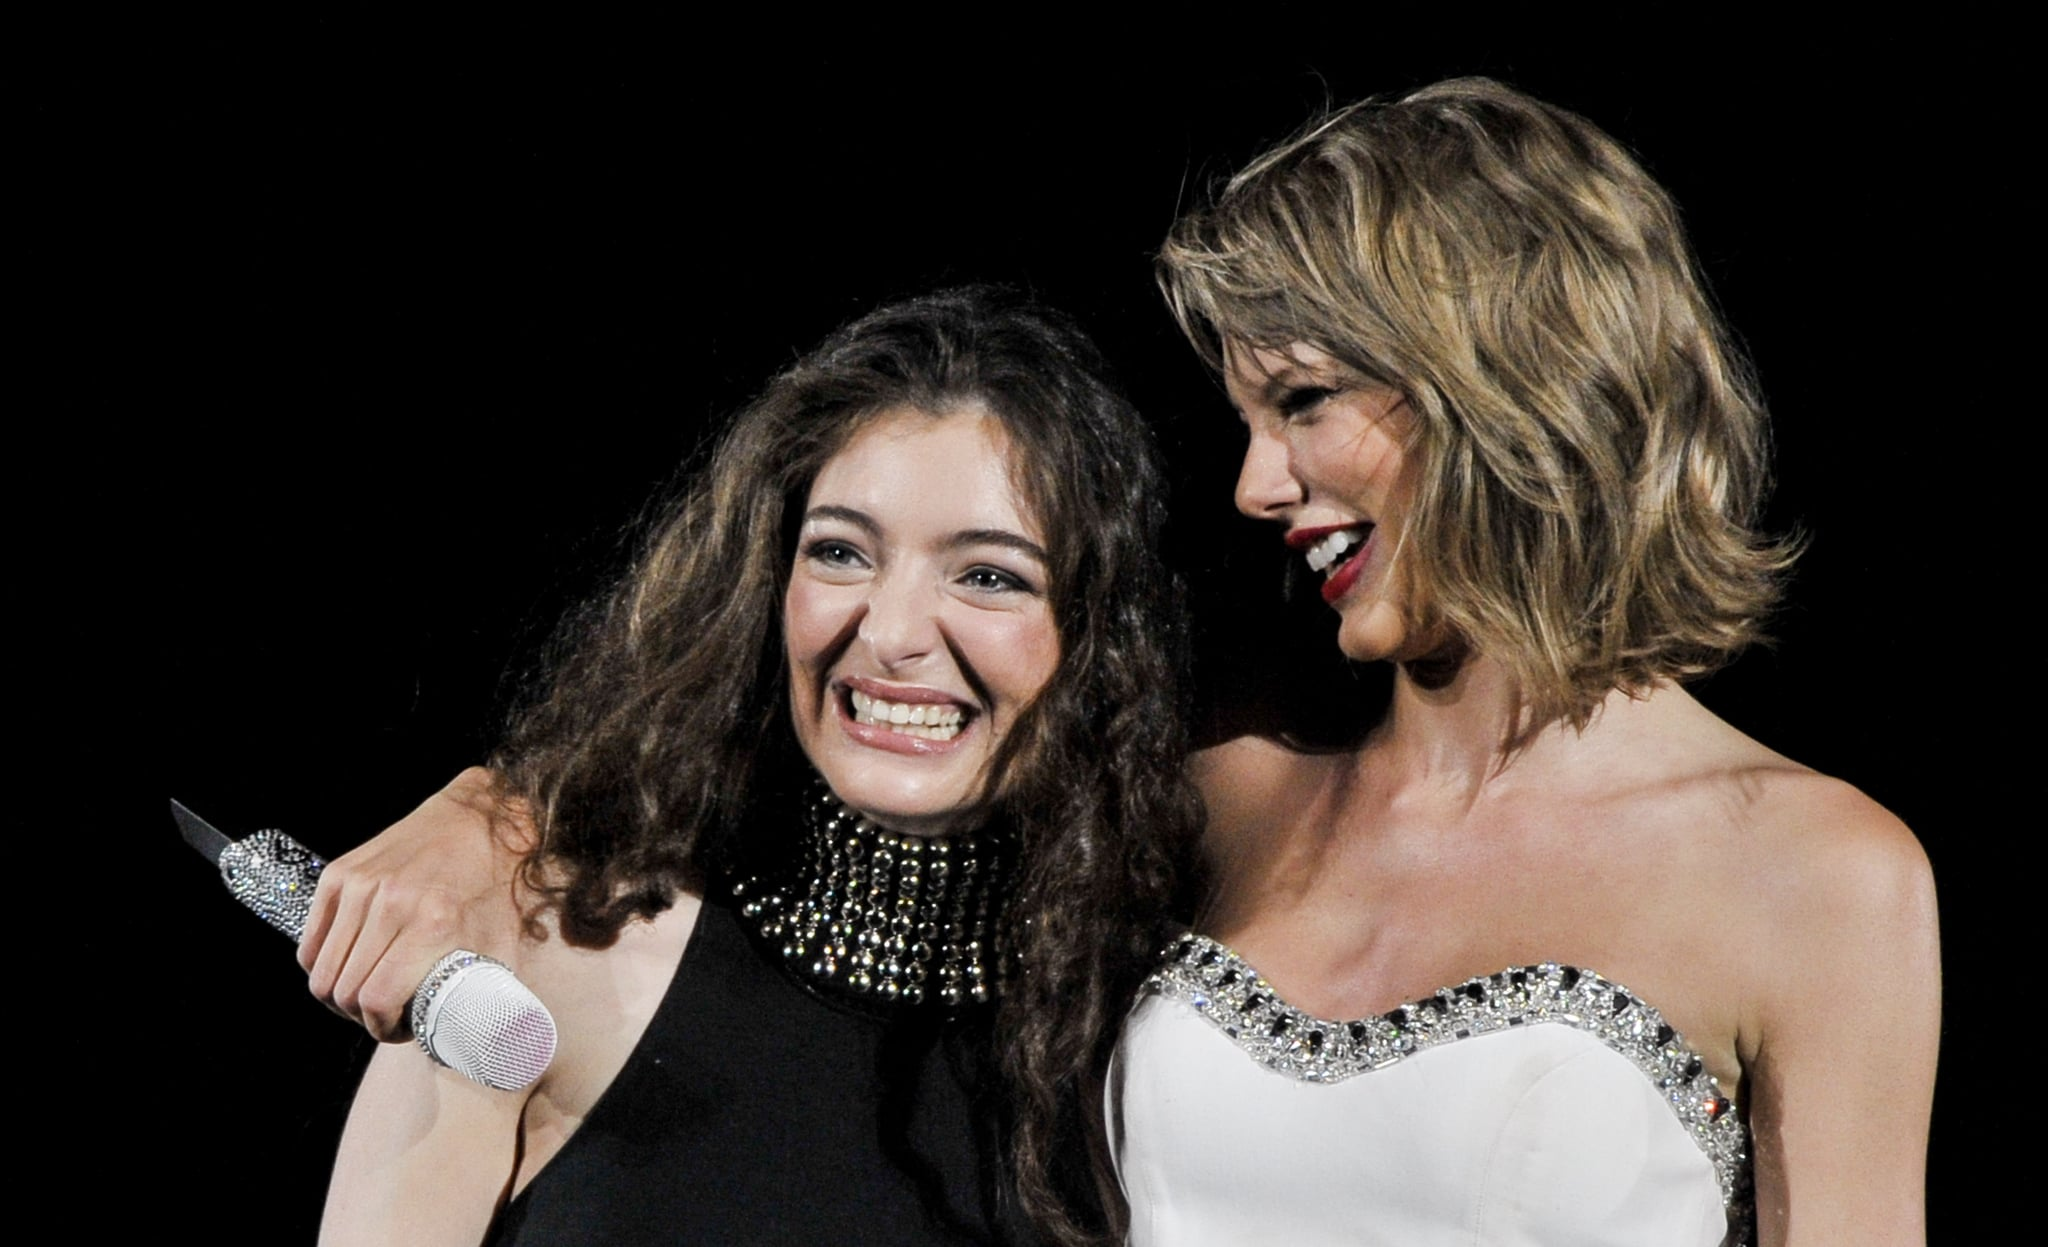 Lorde Is Taylor Swift's Friend, but She's Not in Her Squad